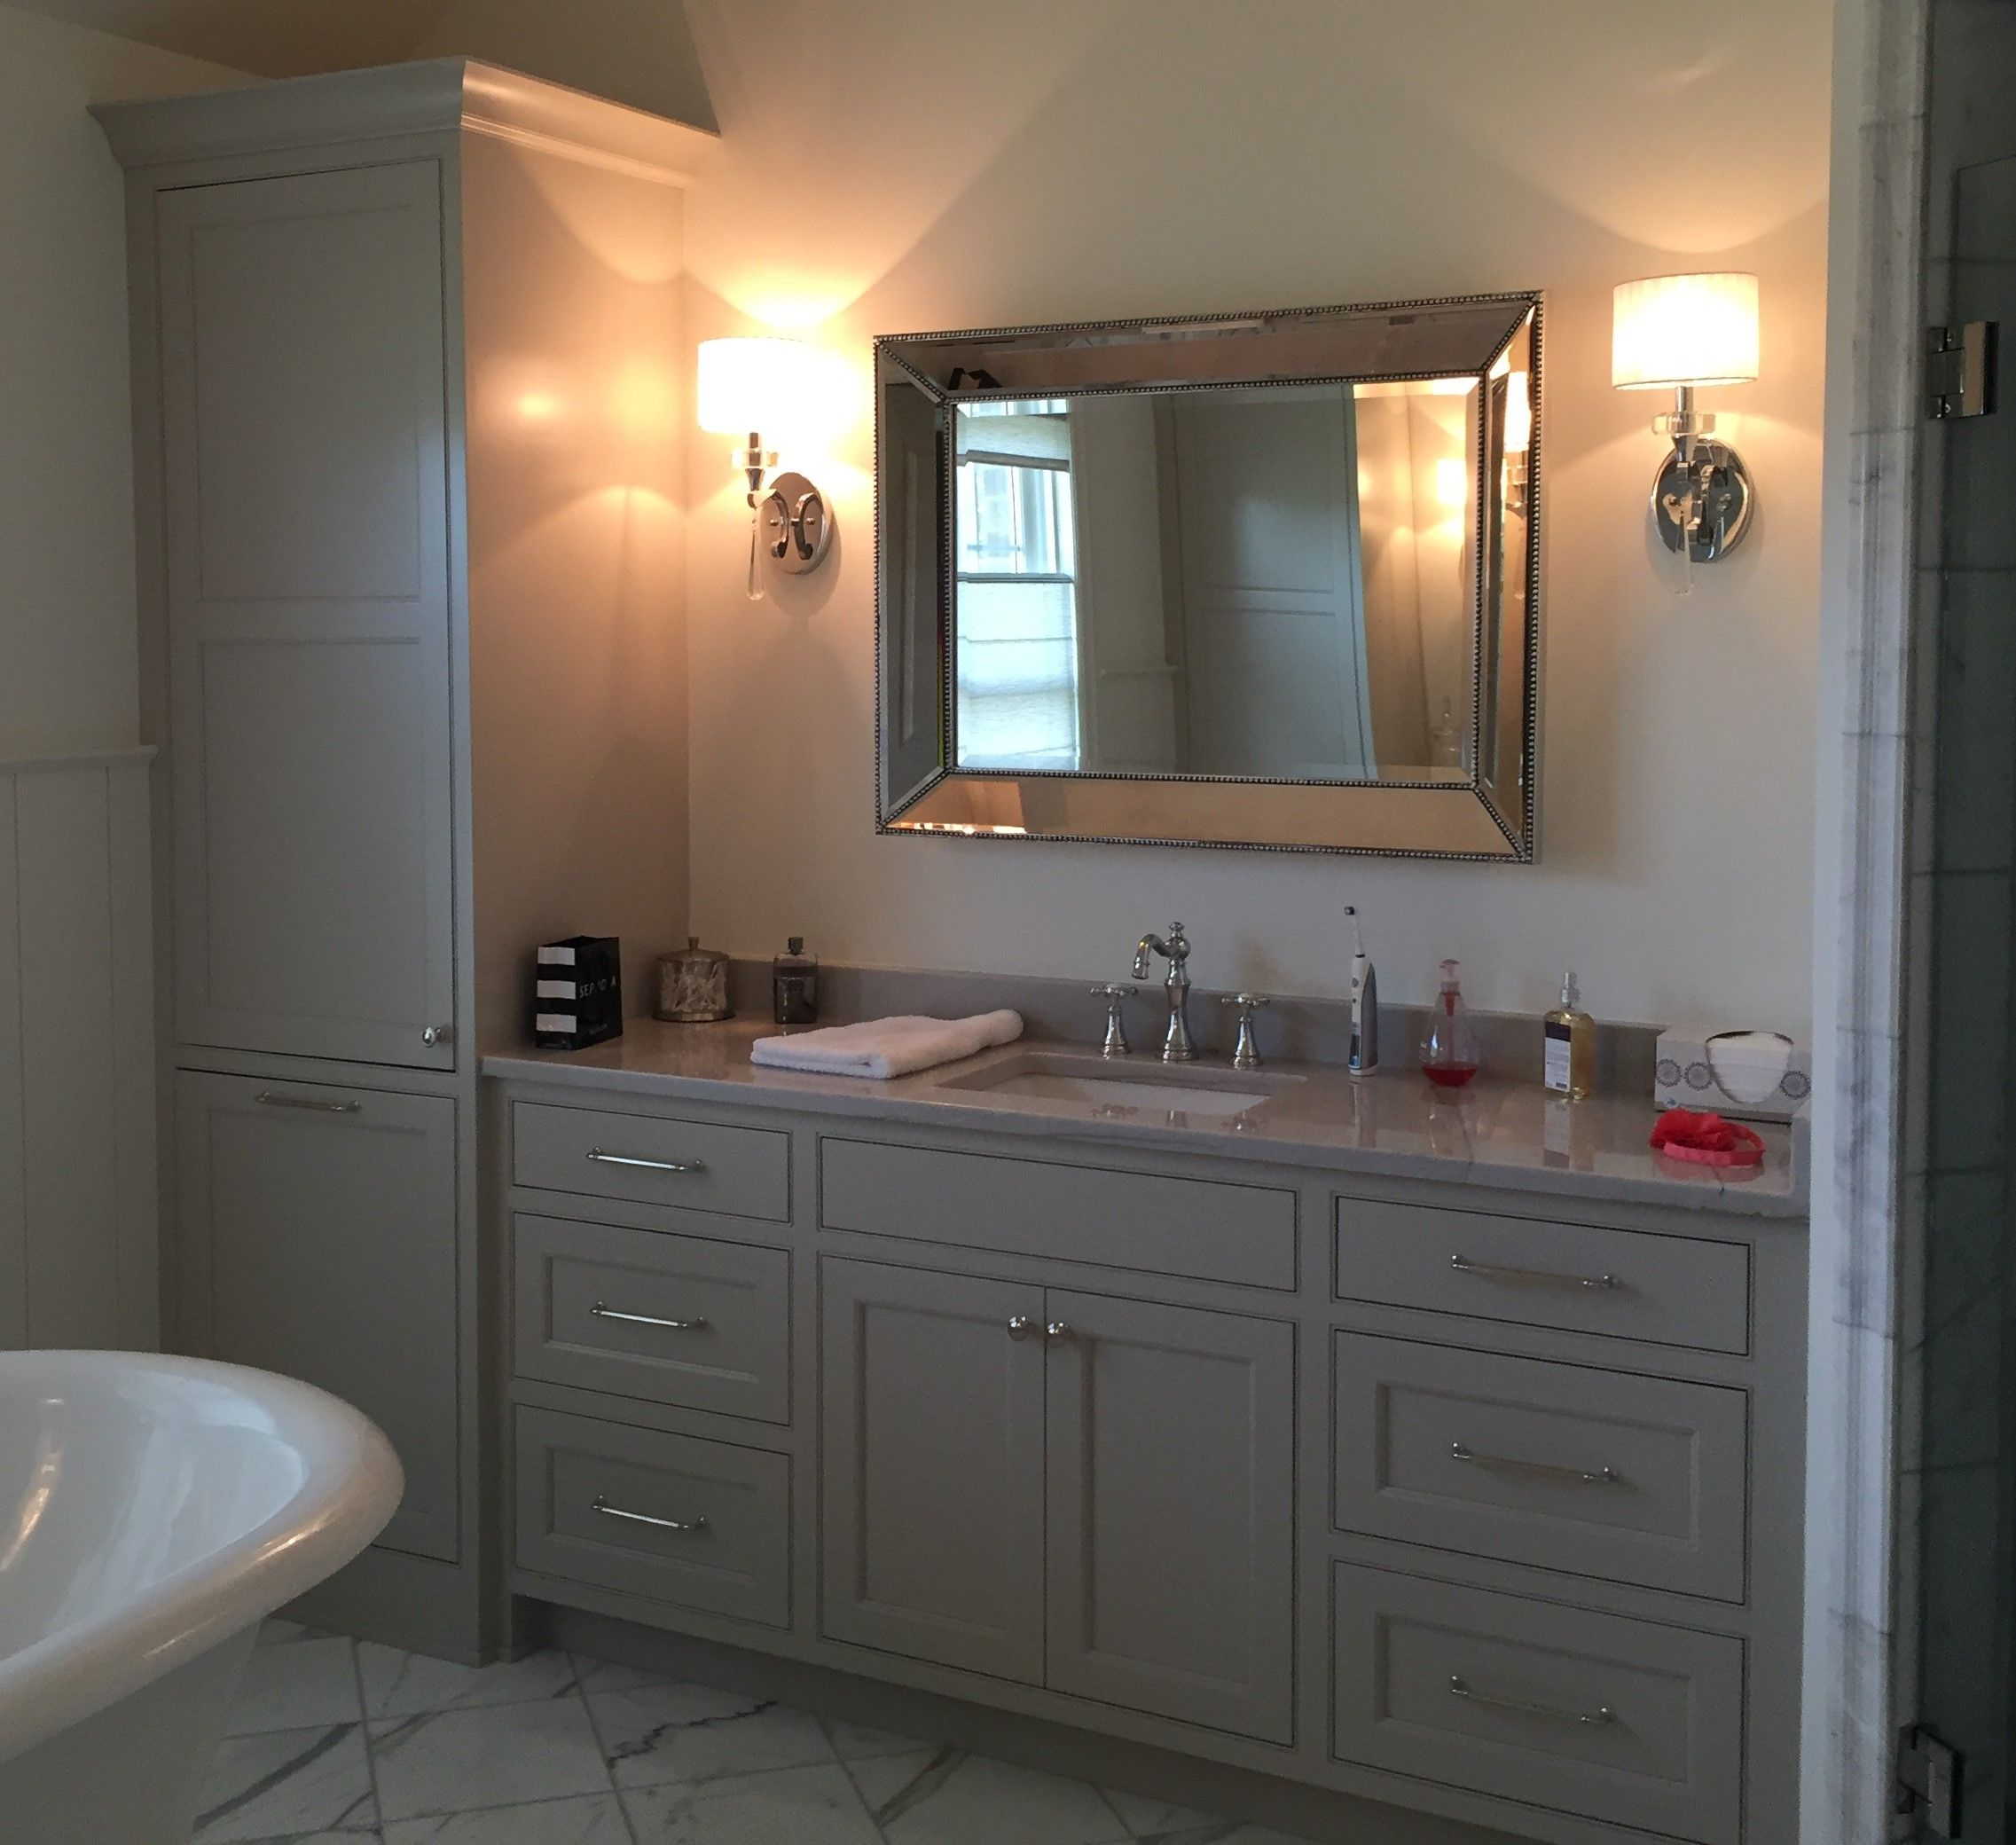 Bathroom Vanity And Linen Cabinet painted inset vanity with linen closet and laundry basket pull out